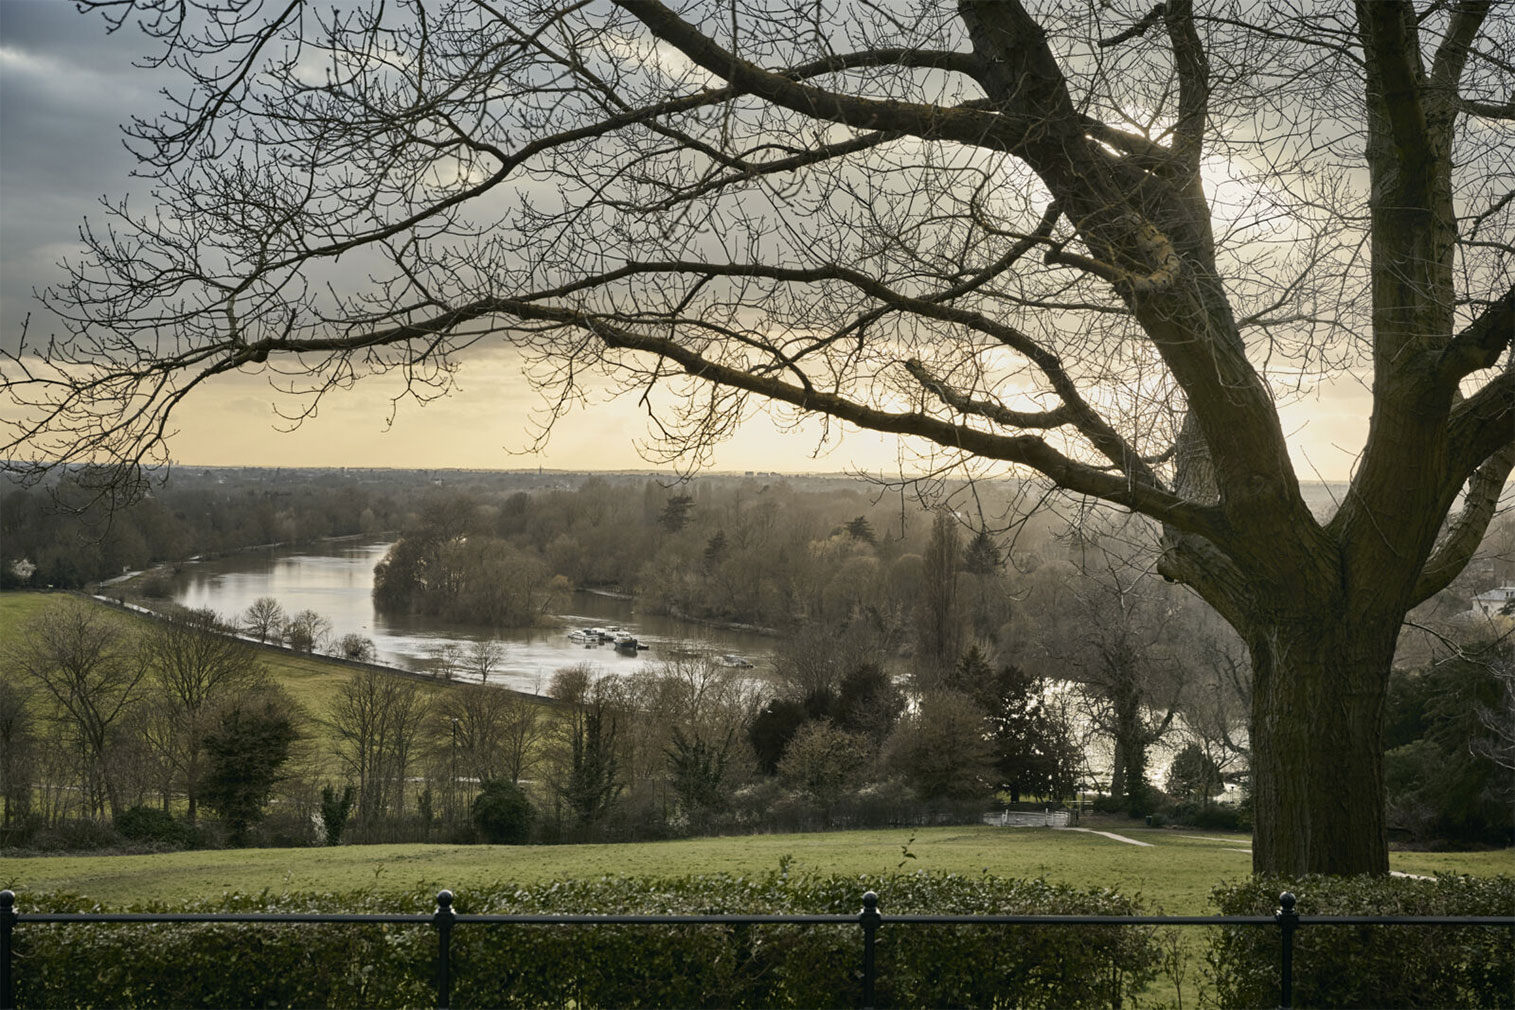 Views from The Vineyard property's gardens take in the Thames